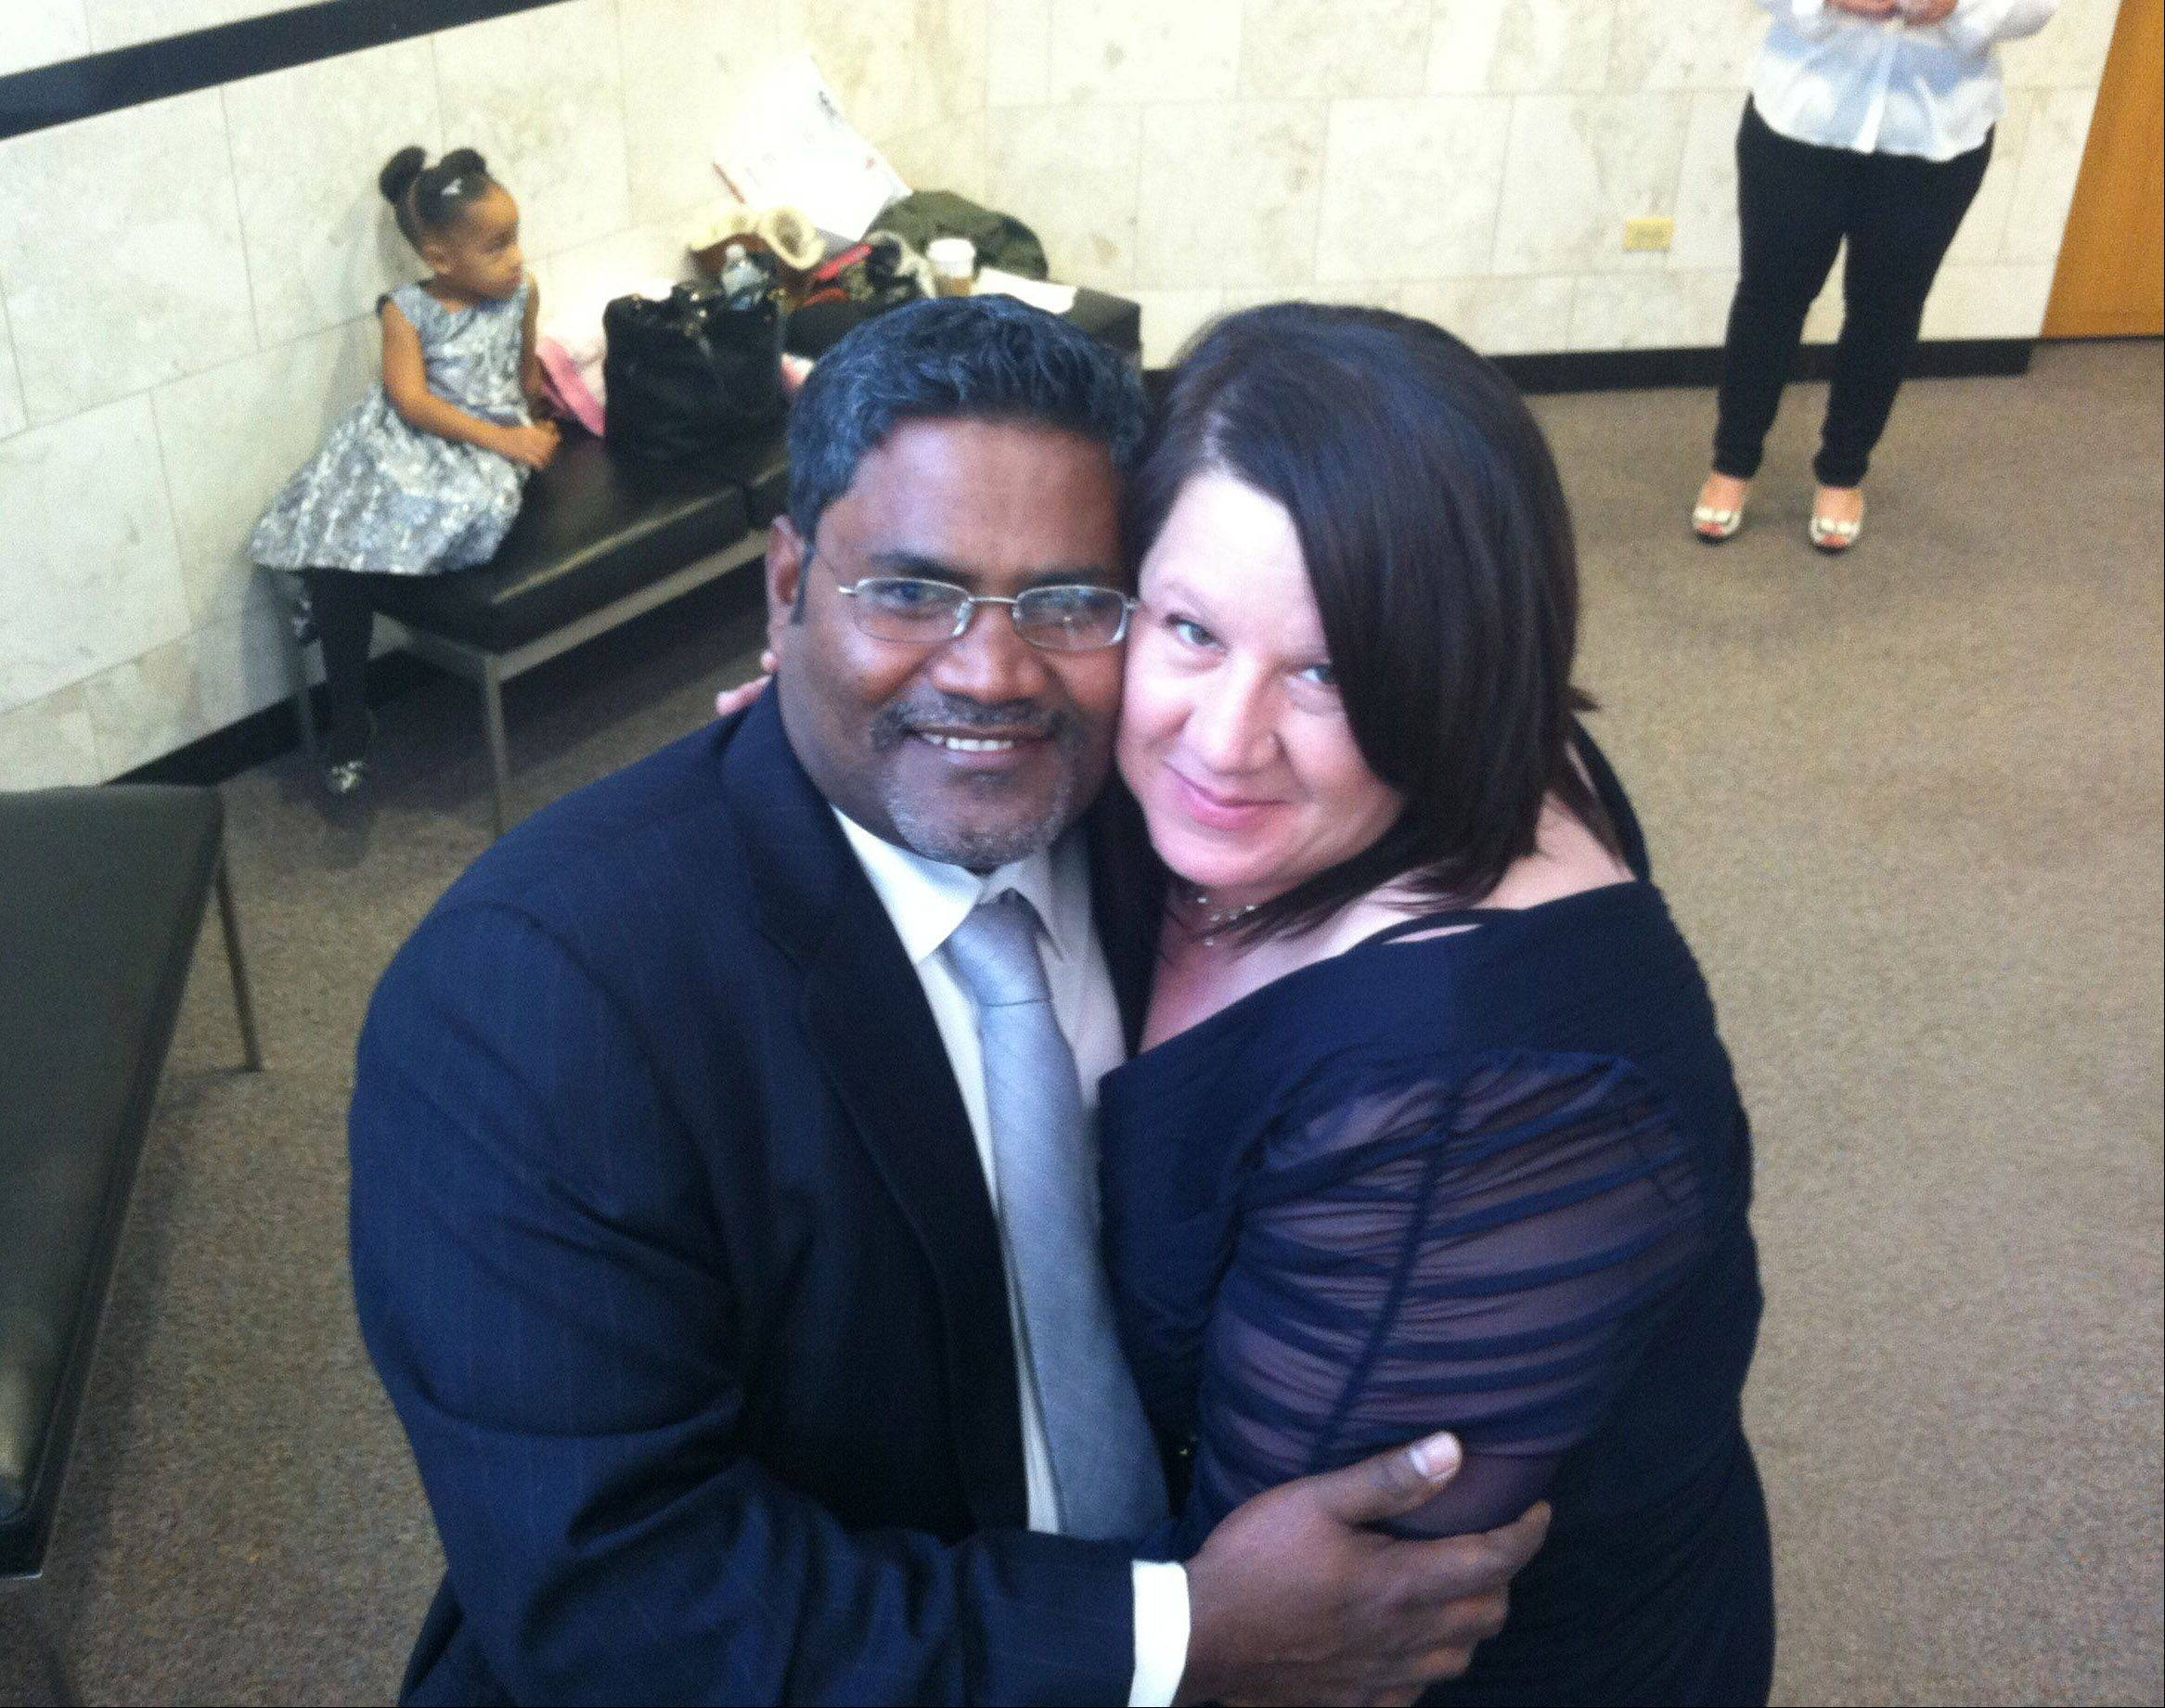 Married on 11/12/13, they'll have an unforgettable anniversary date, said Candance Broadway and Shaik Javeed of Zion, who married Tuesday at the Lake County courthouse.